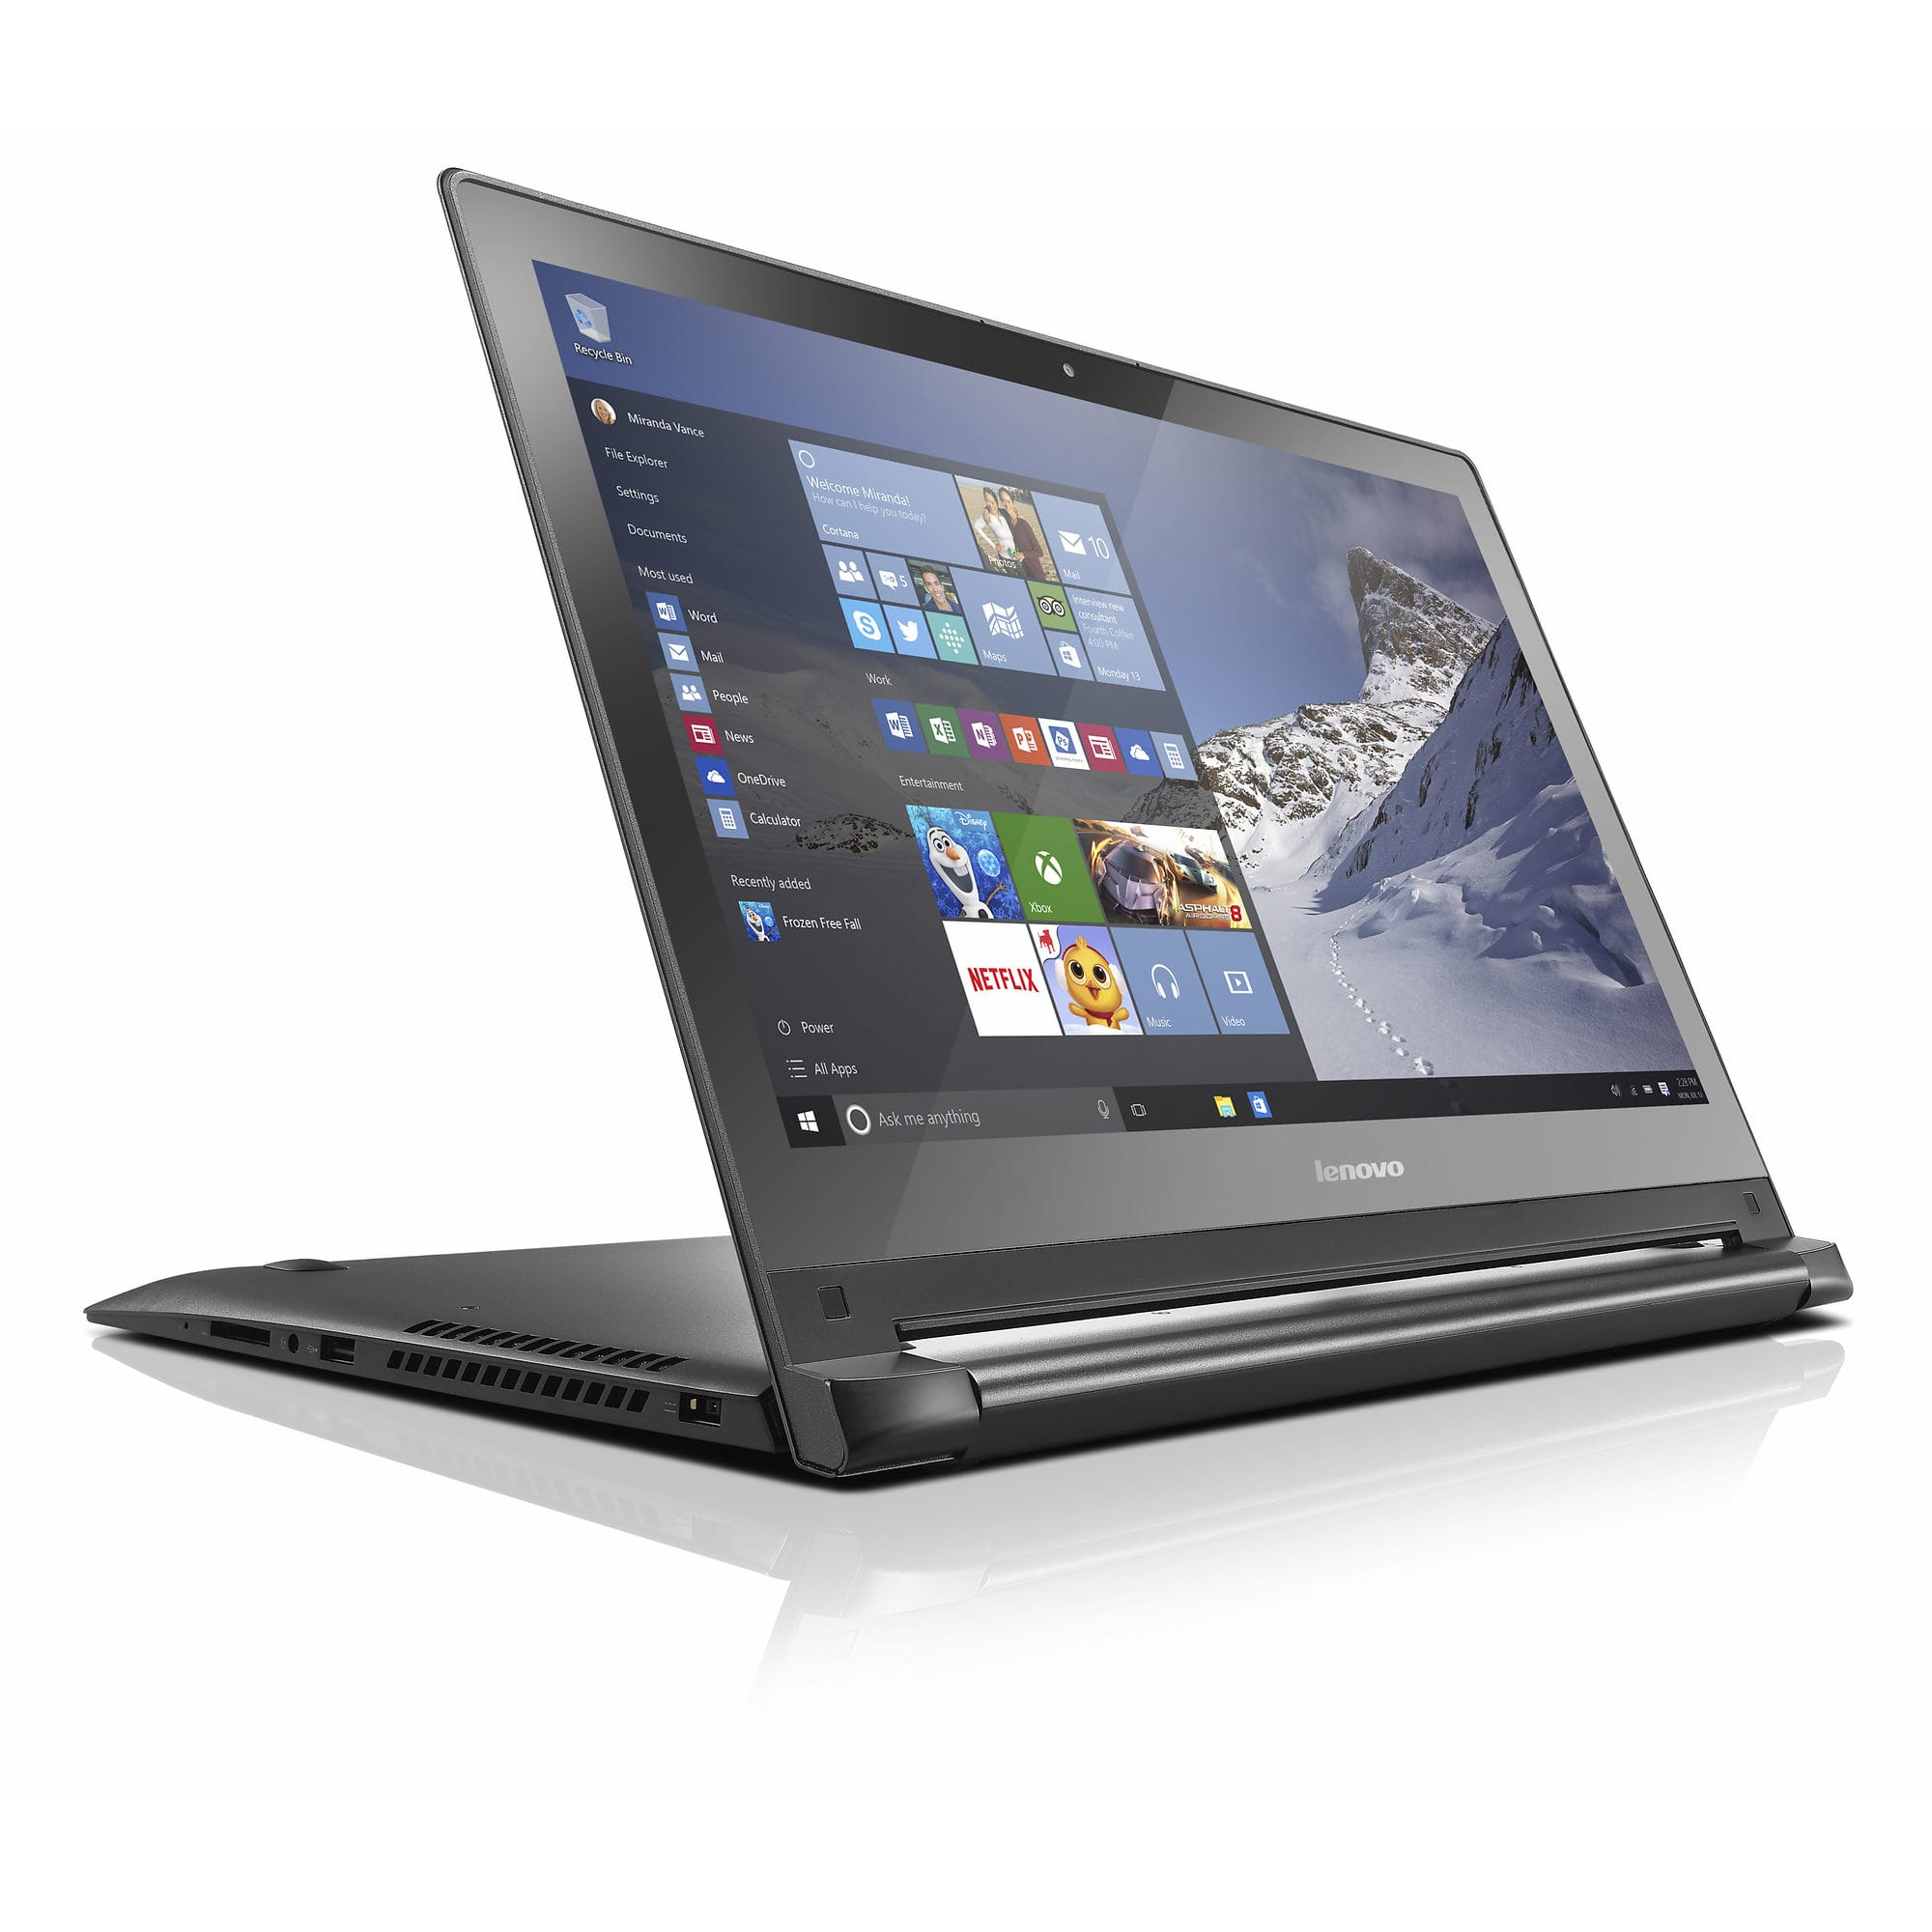 """Lenovo Edge 2-in-1 15.6"""" 1080P IPS Touch, Core i3-5020U, 6GB Ram, 500GB HDD, WiFi AC, Win10 Home 64 @ $350 at Bj's Wholesale with F/S"""